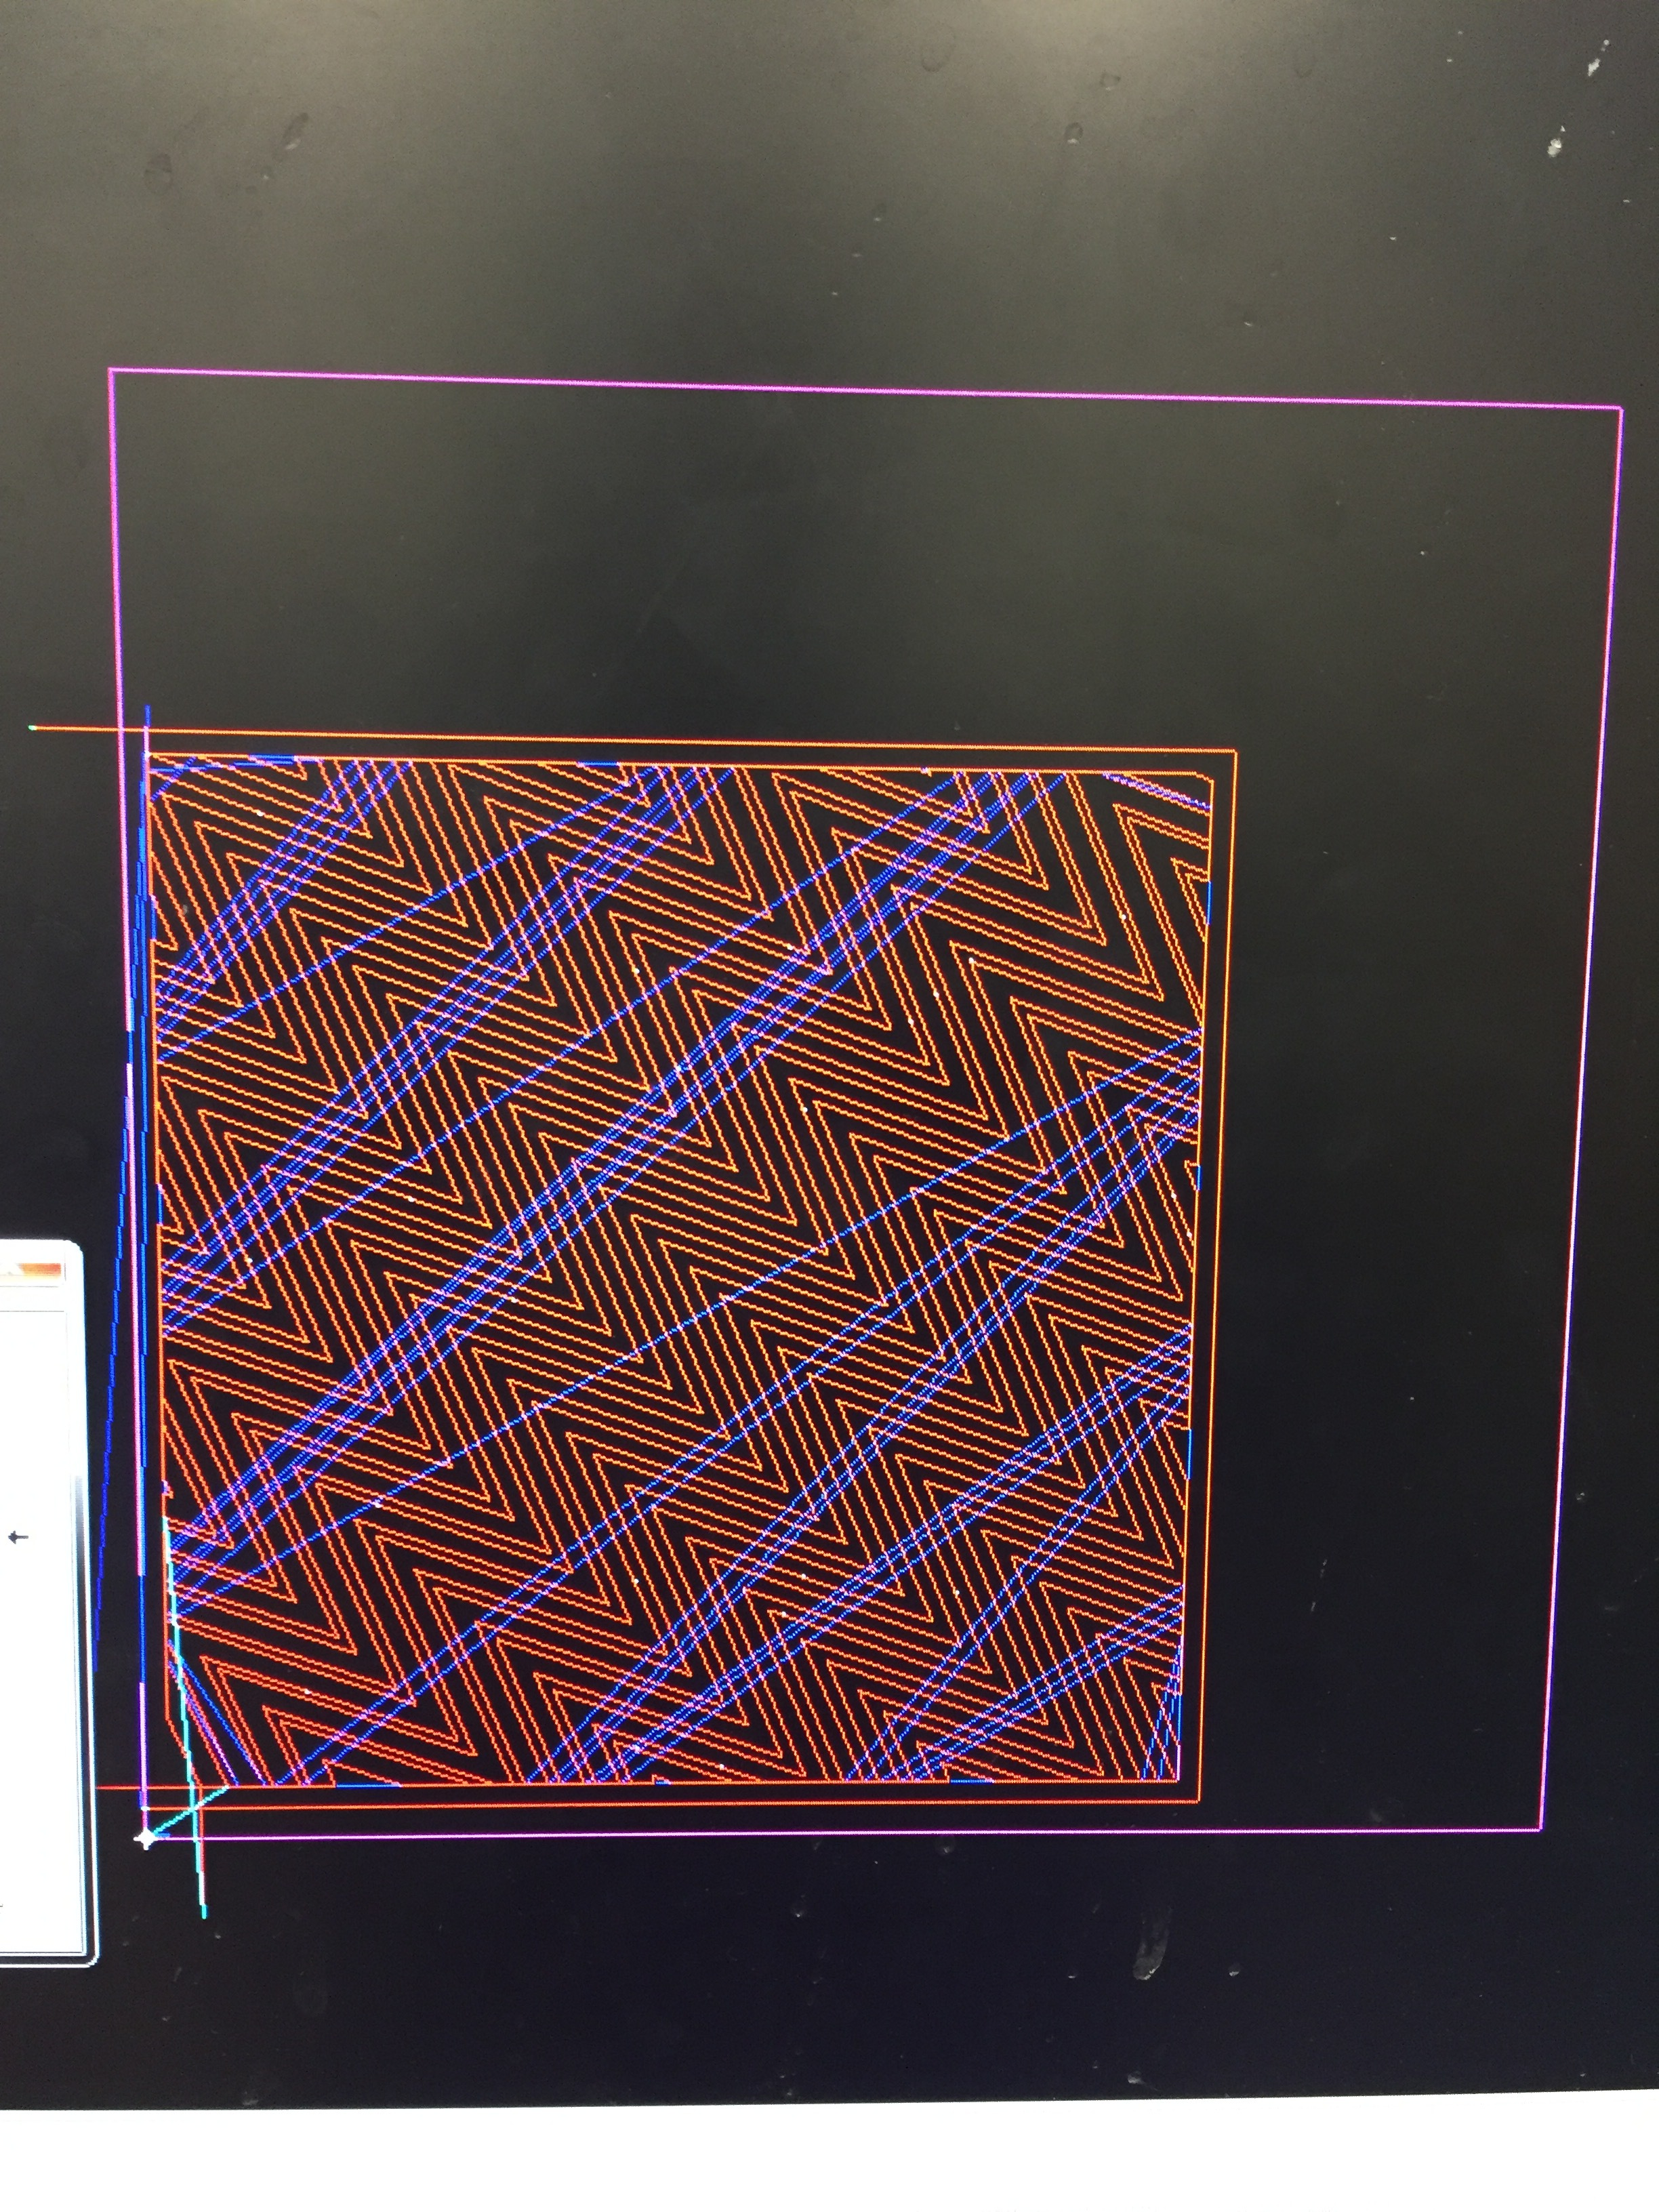 These images follow the current theme of optical illusion, using digital drawings which are converted into a CAD program for a waterjet cutter to follow.